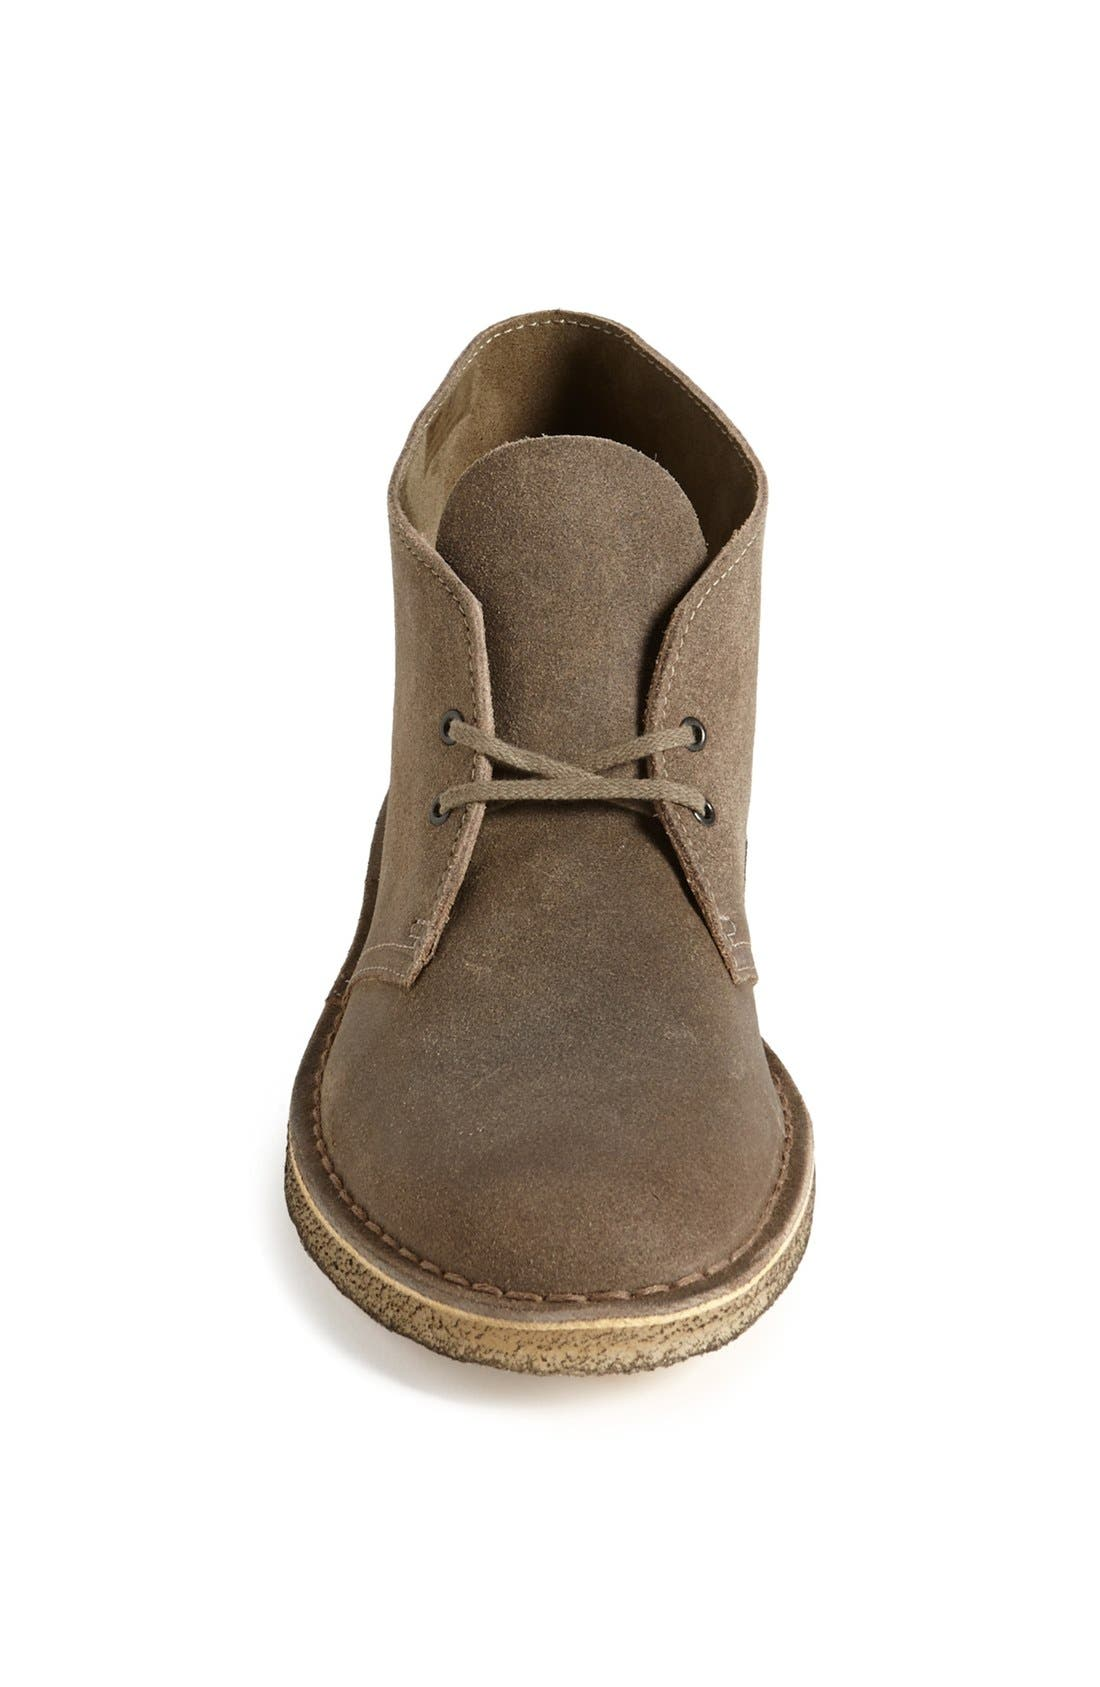 'Desert' Boot,                             Alternate thumbnail 7, color,                             TAUPE DISTRESSED SUEDE